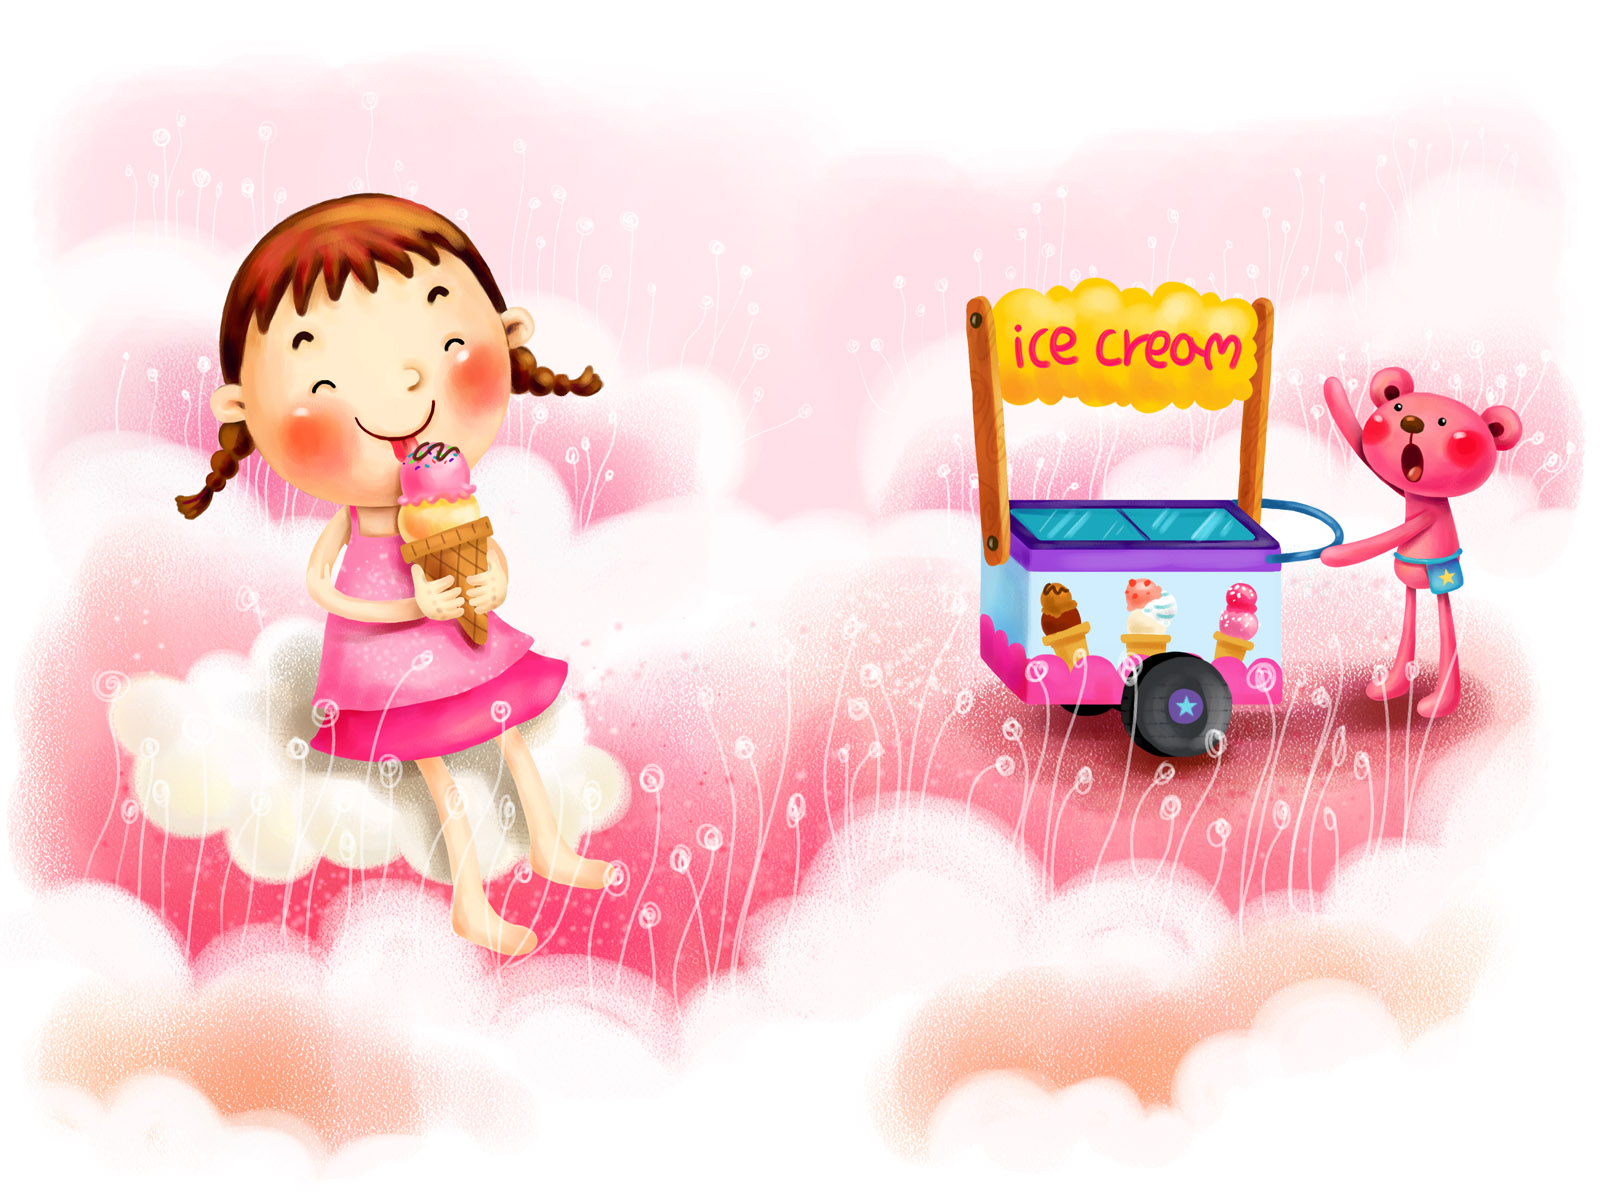 Pretty Baby Girl Wallpapers Download Free Cute Ice Cream Wallpapers Pixelstalk Net